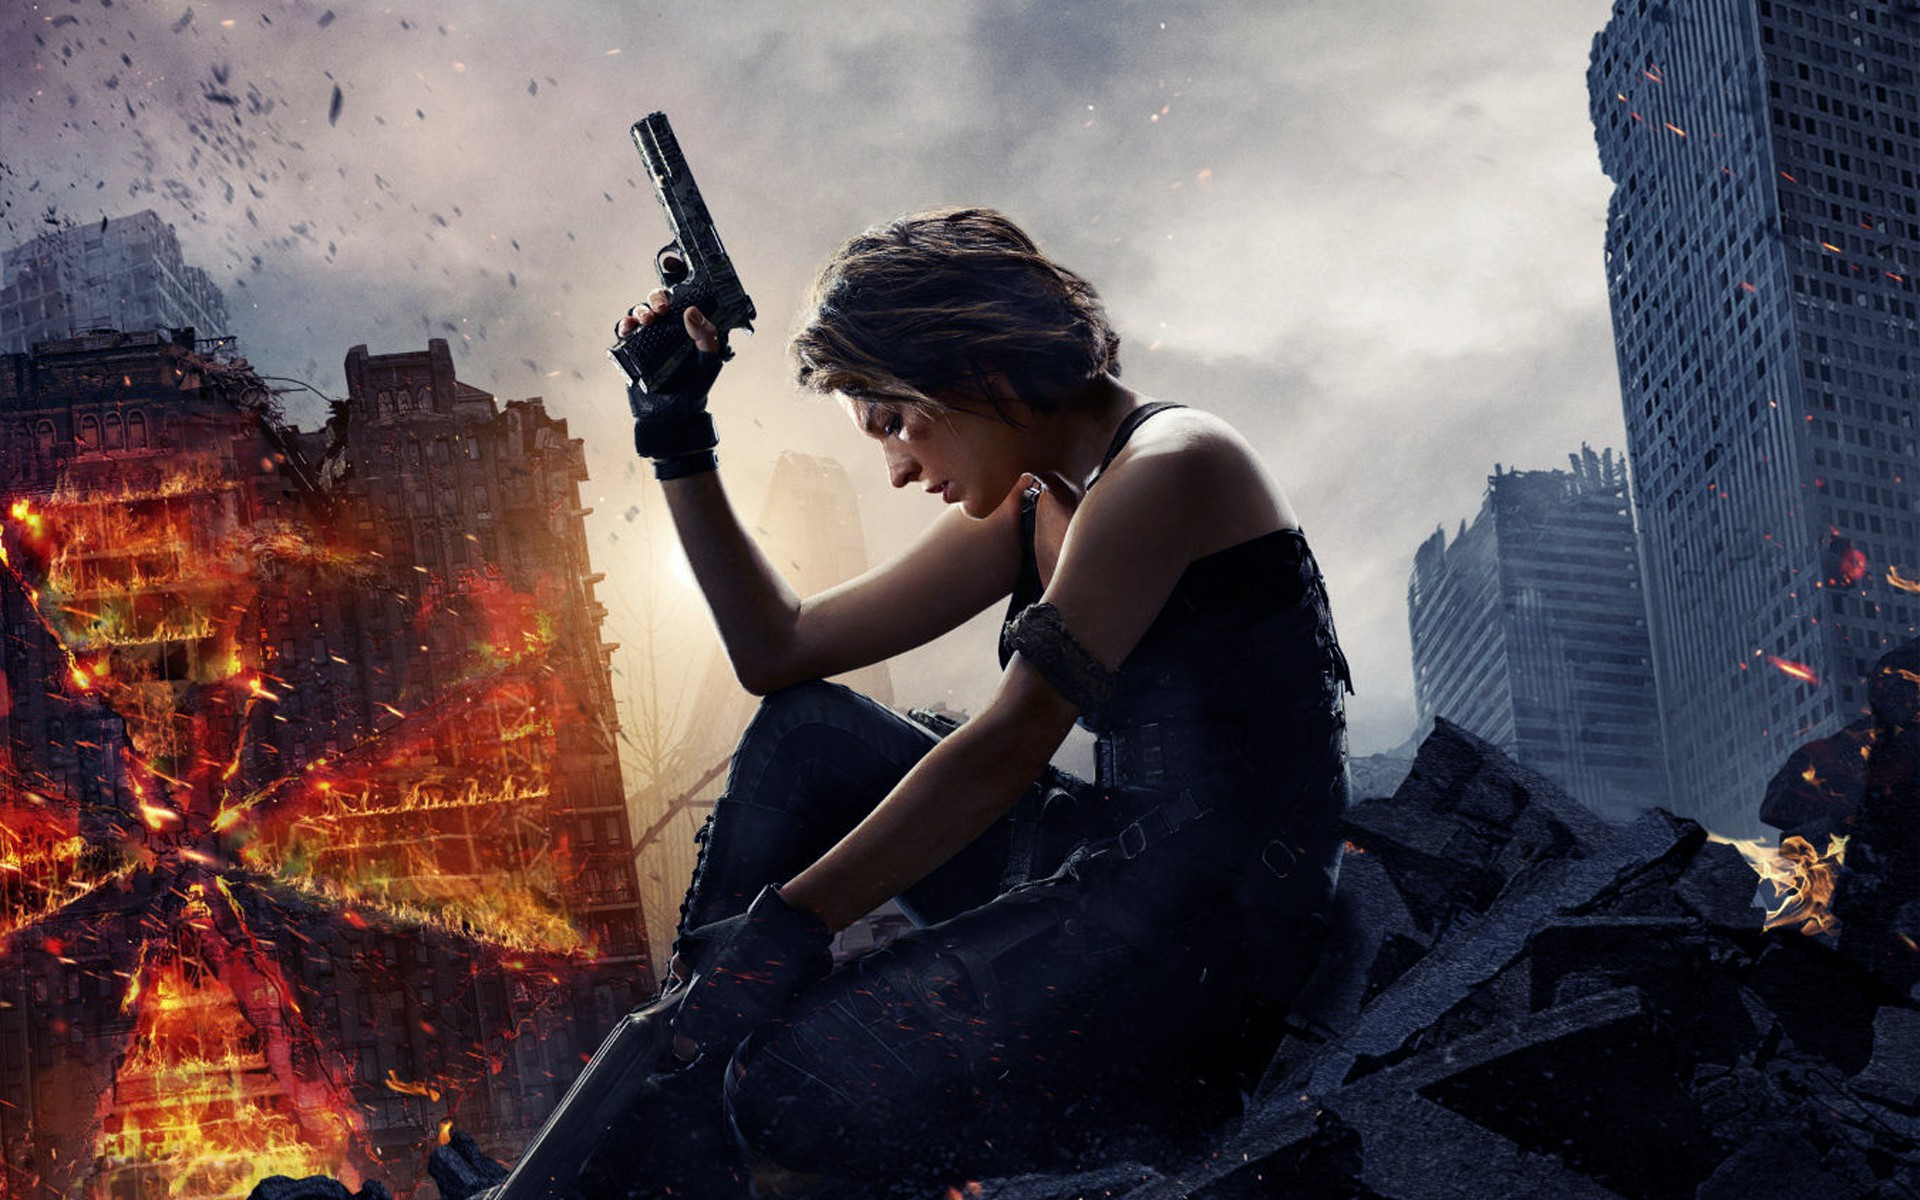 Resident Evil: The Final Chapter Offers Up Some Last Minute